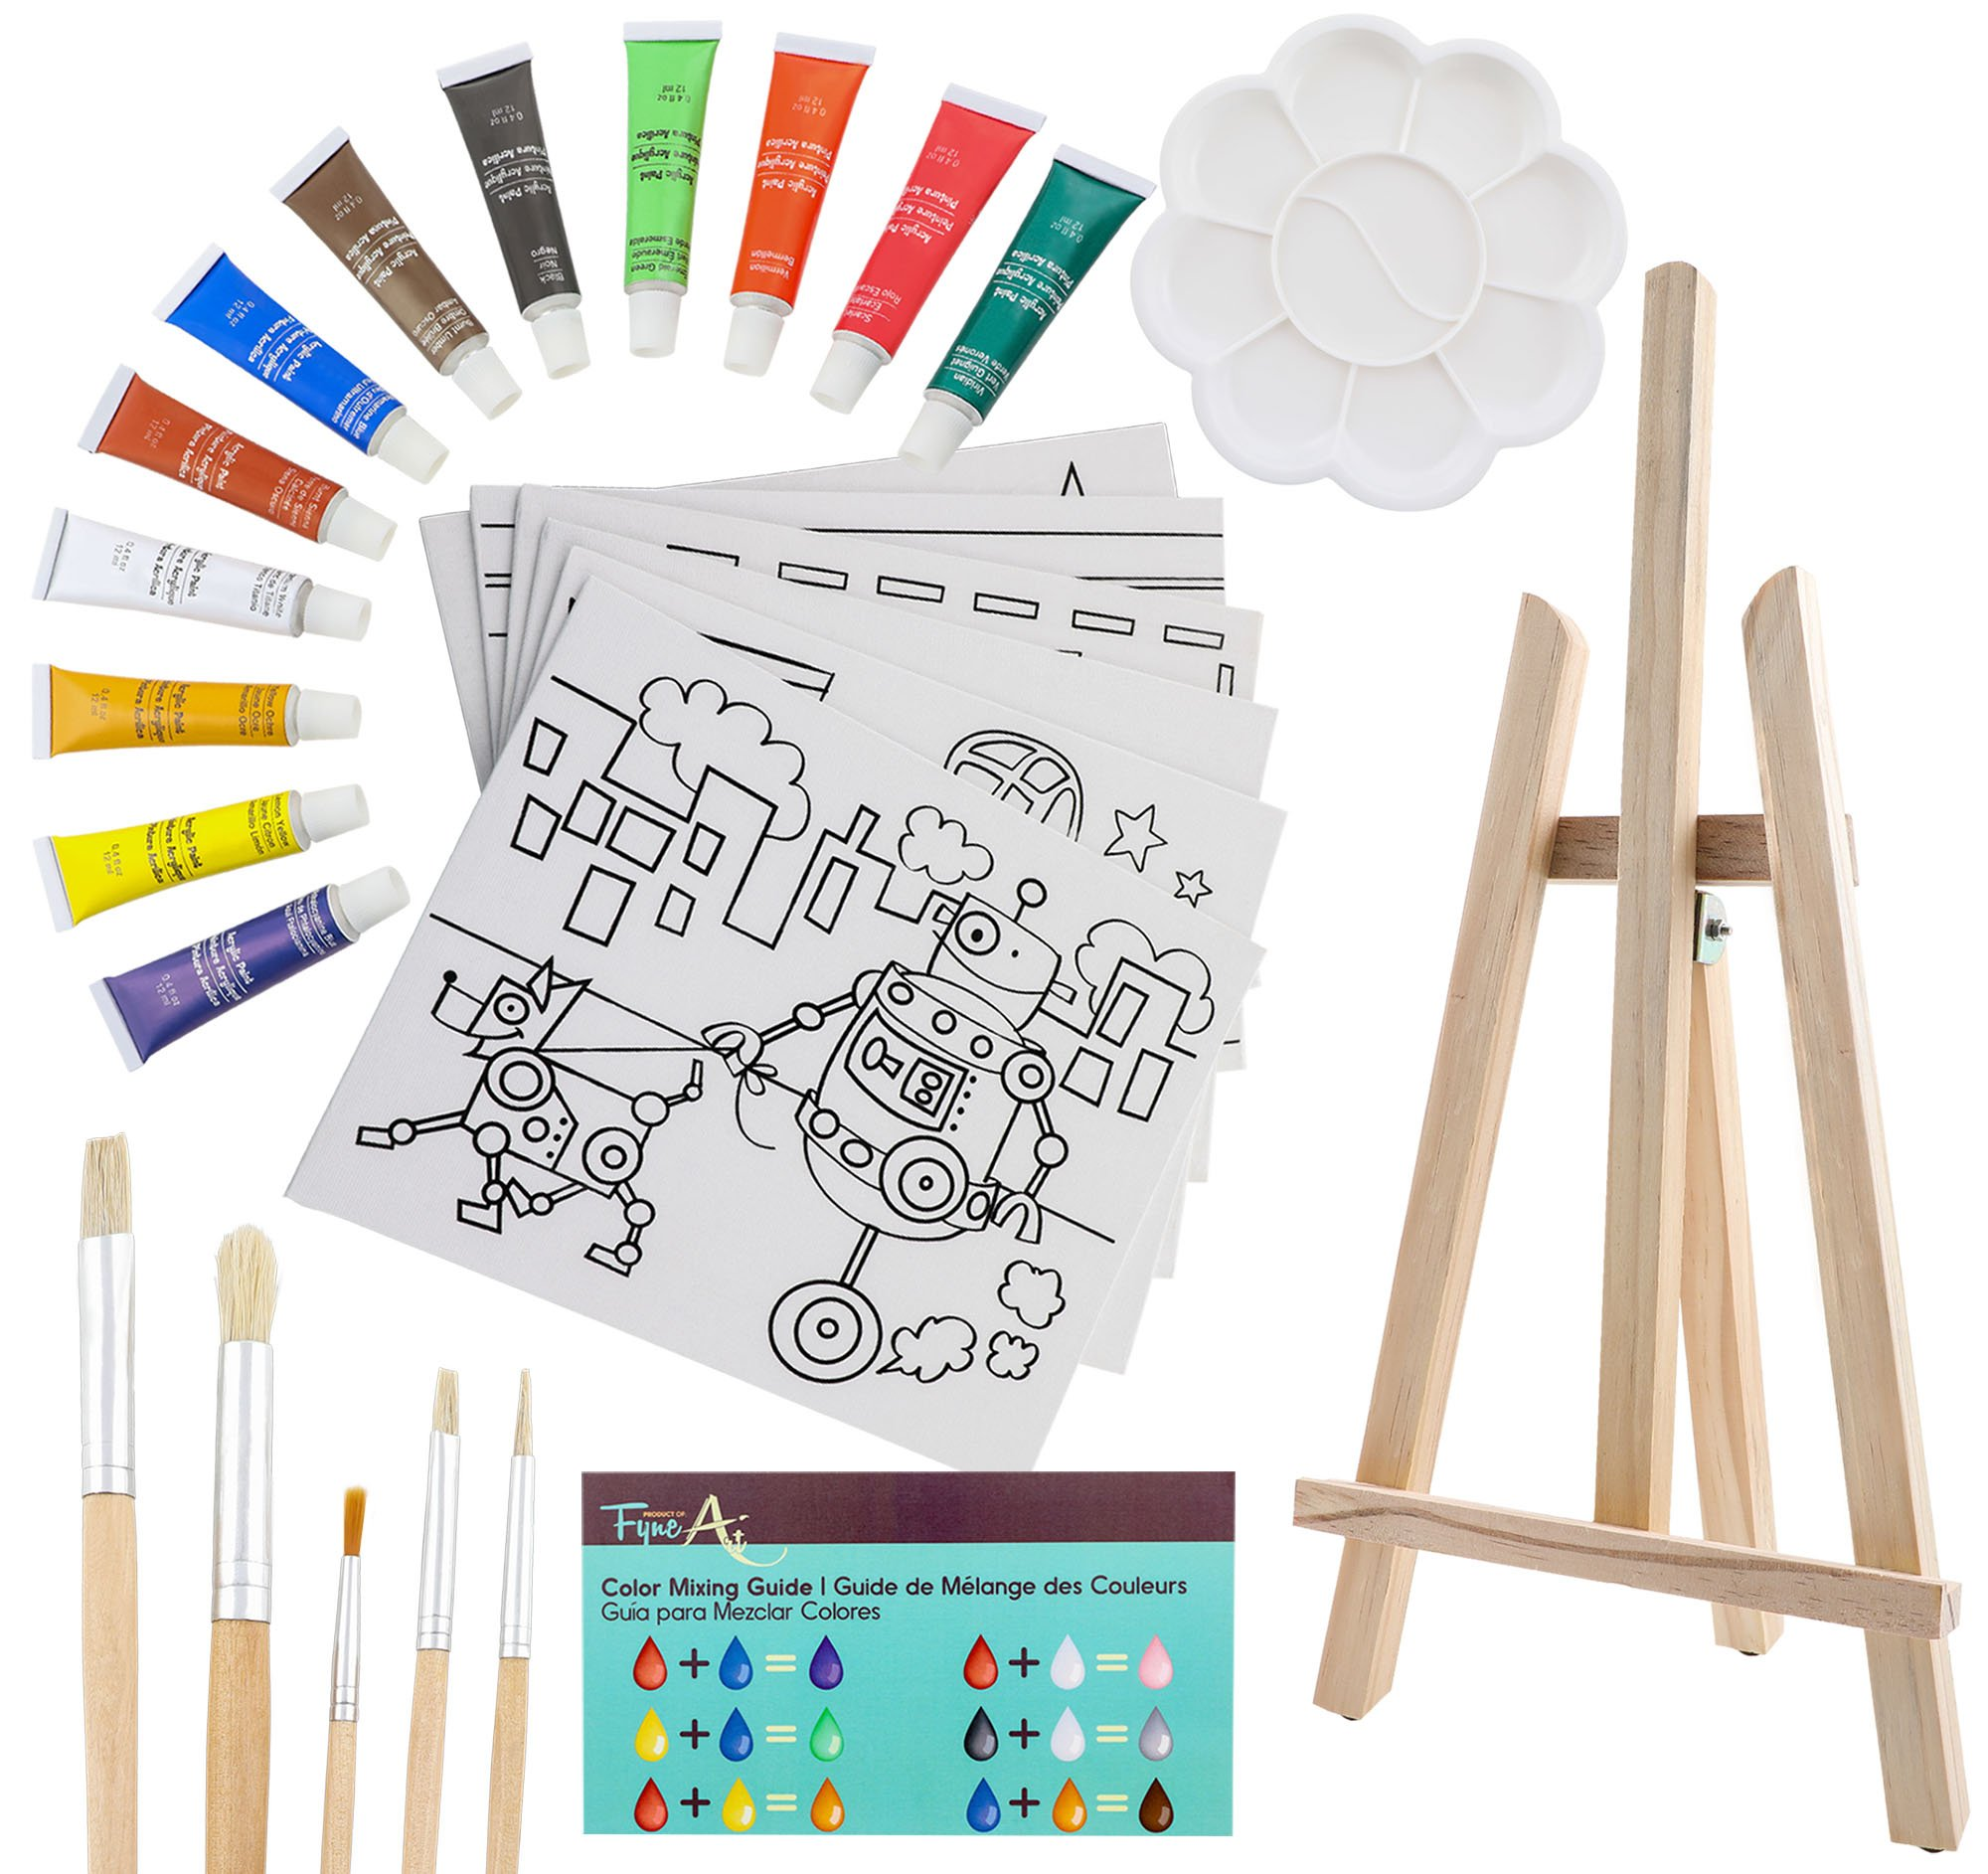 26-Piece Kids Canvas Painting Set - Arts and Crafts Easel Supplies Kit - Includes Wood Art Easel, Kid Canvases, Acrylic Paint, Kid Paint Brushes, Palette and More! Ages 5 and Up, by FyneArt